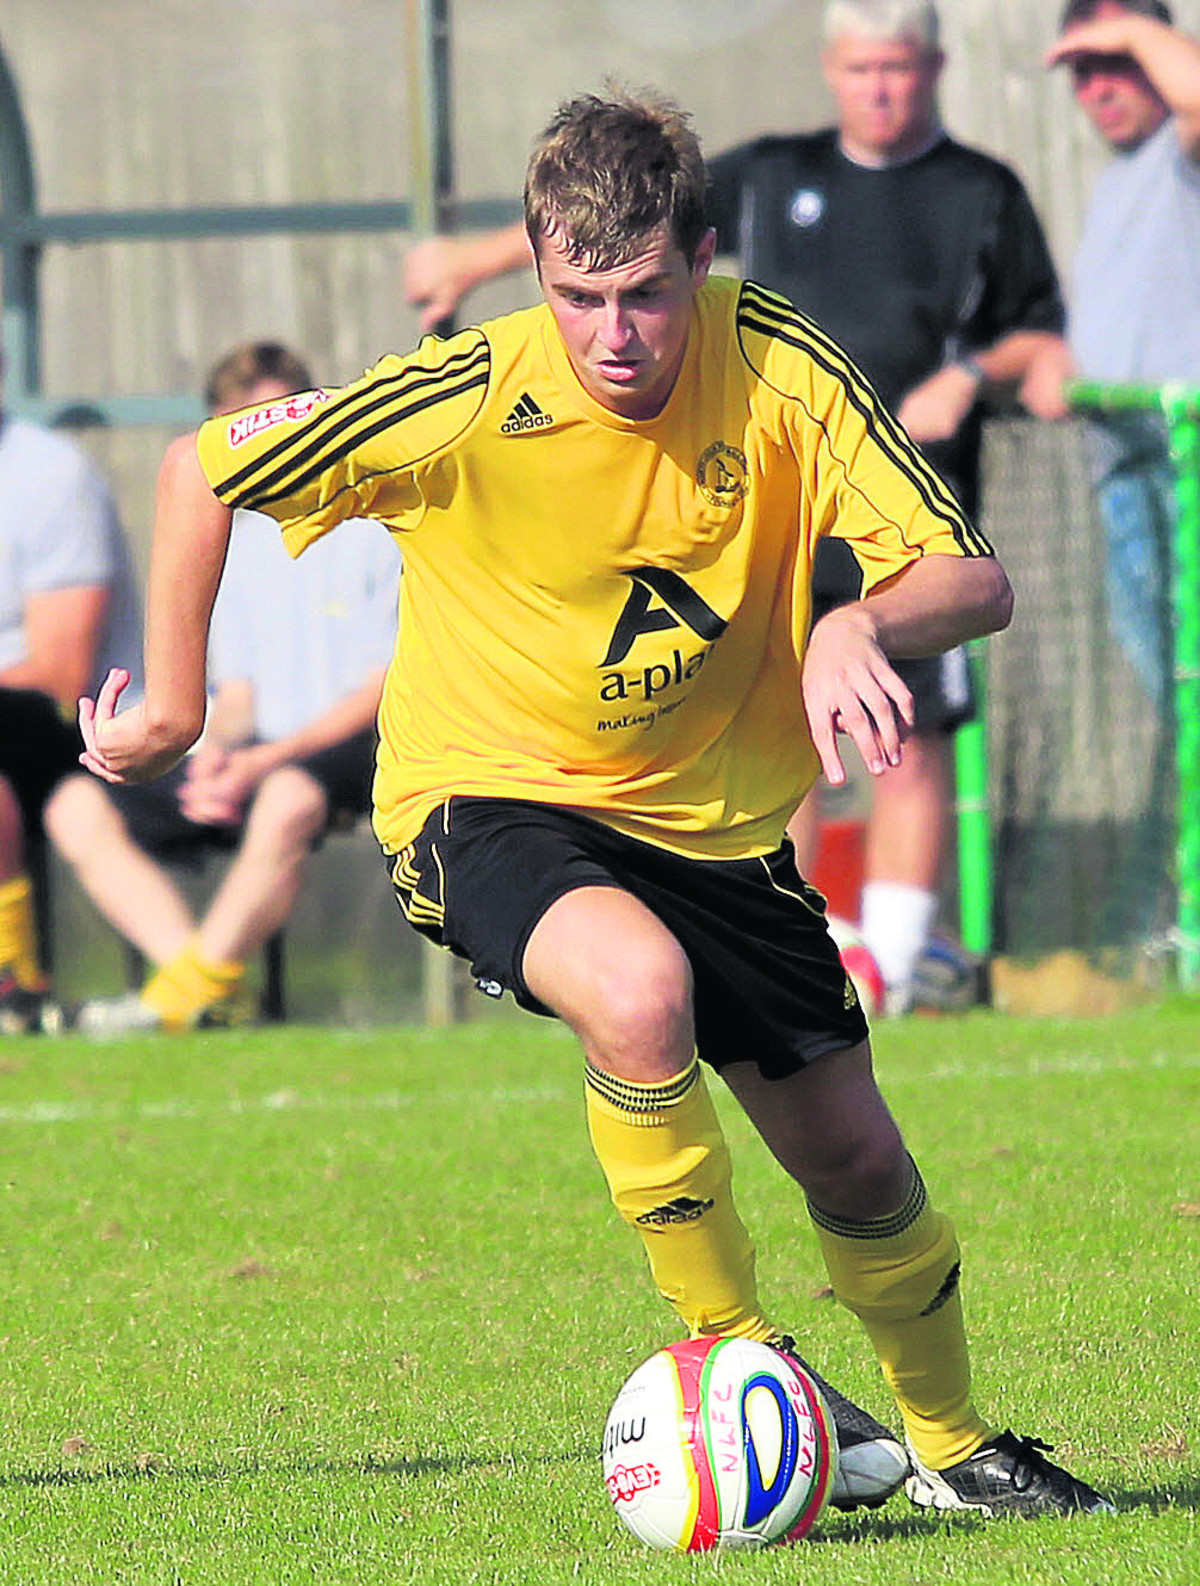 John Mills scored Didcot's goal in their 5-1 defeat at Merthyr